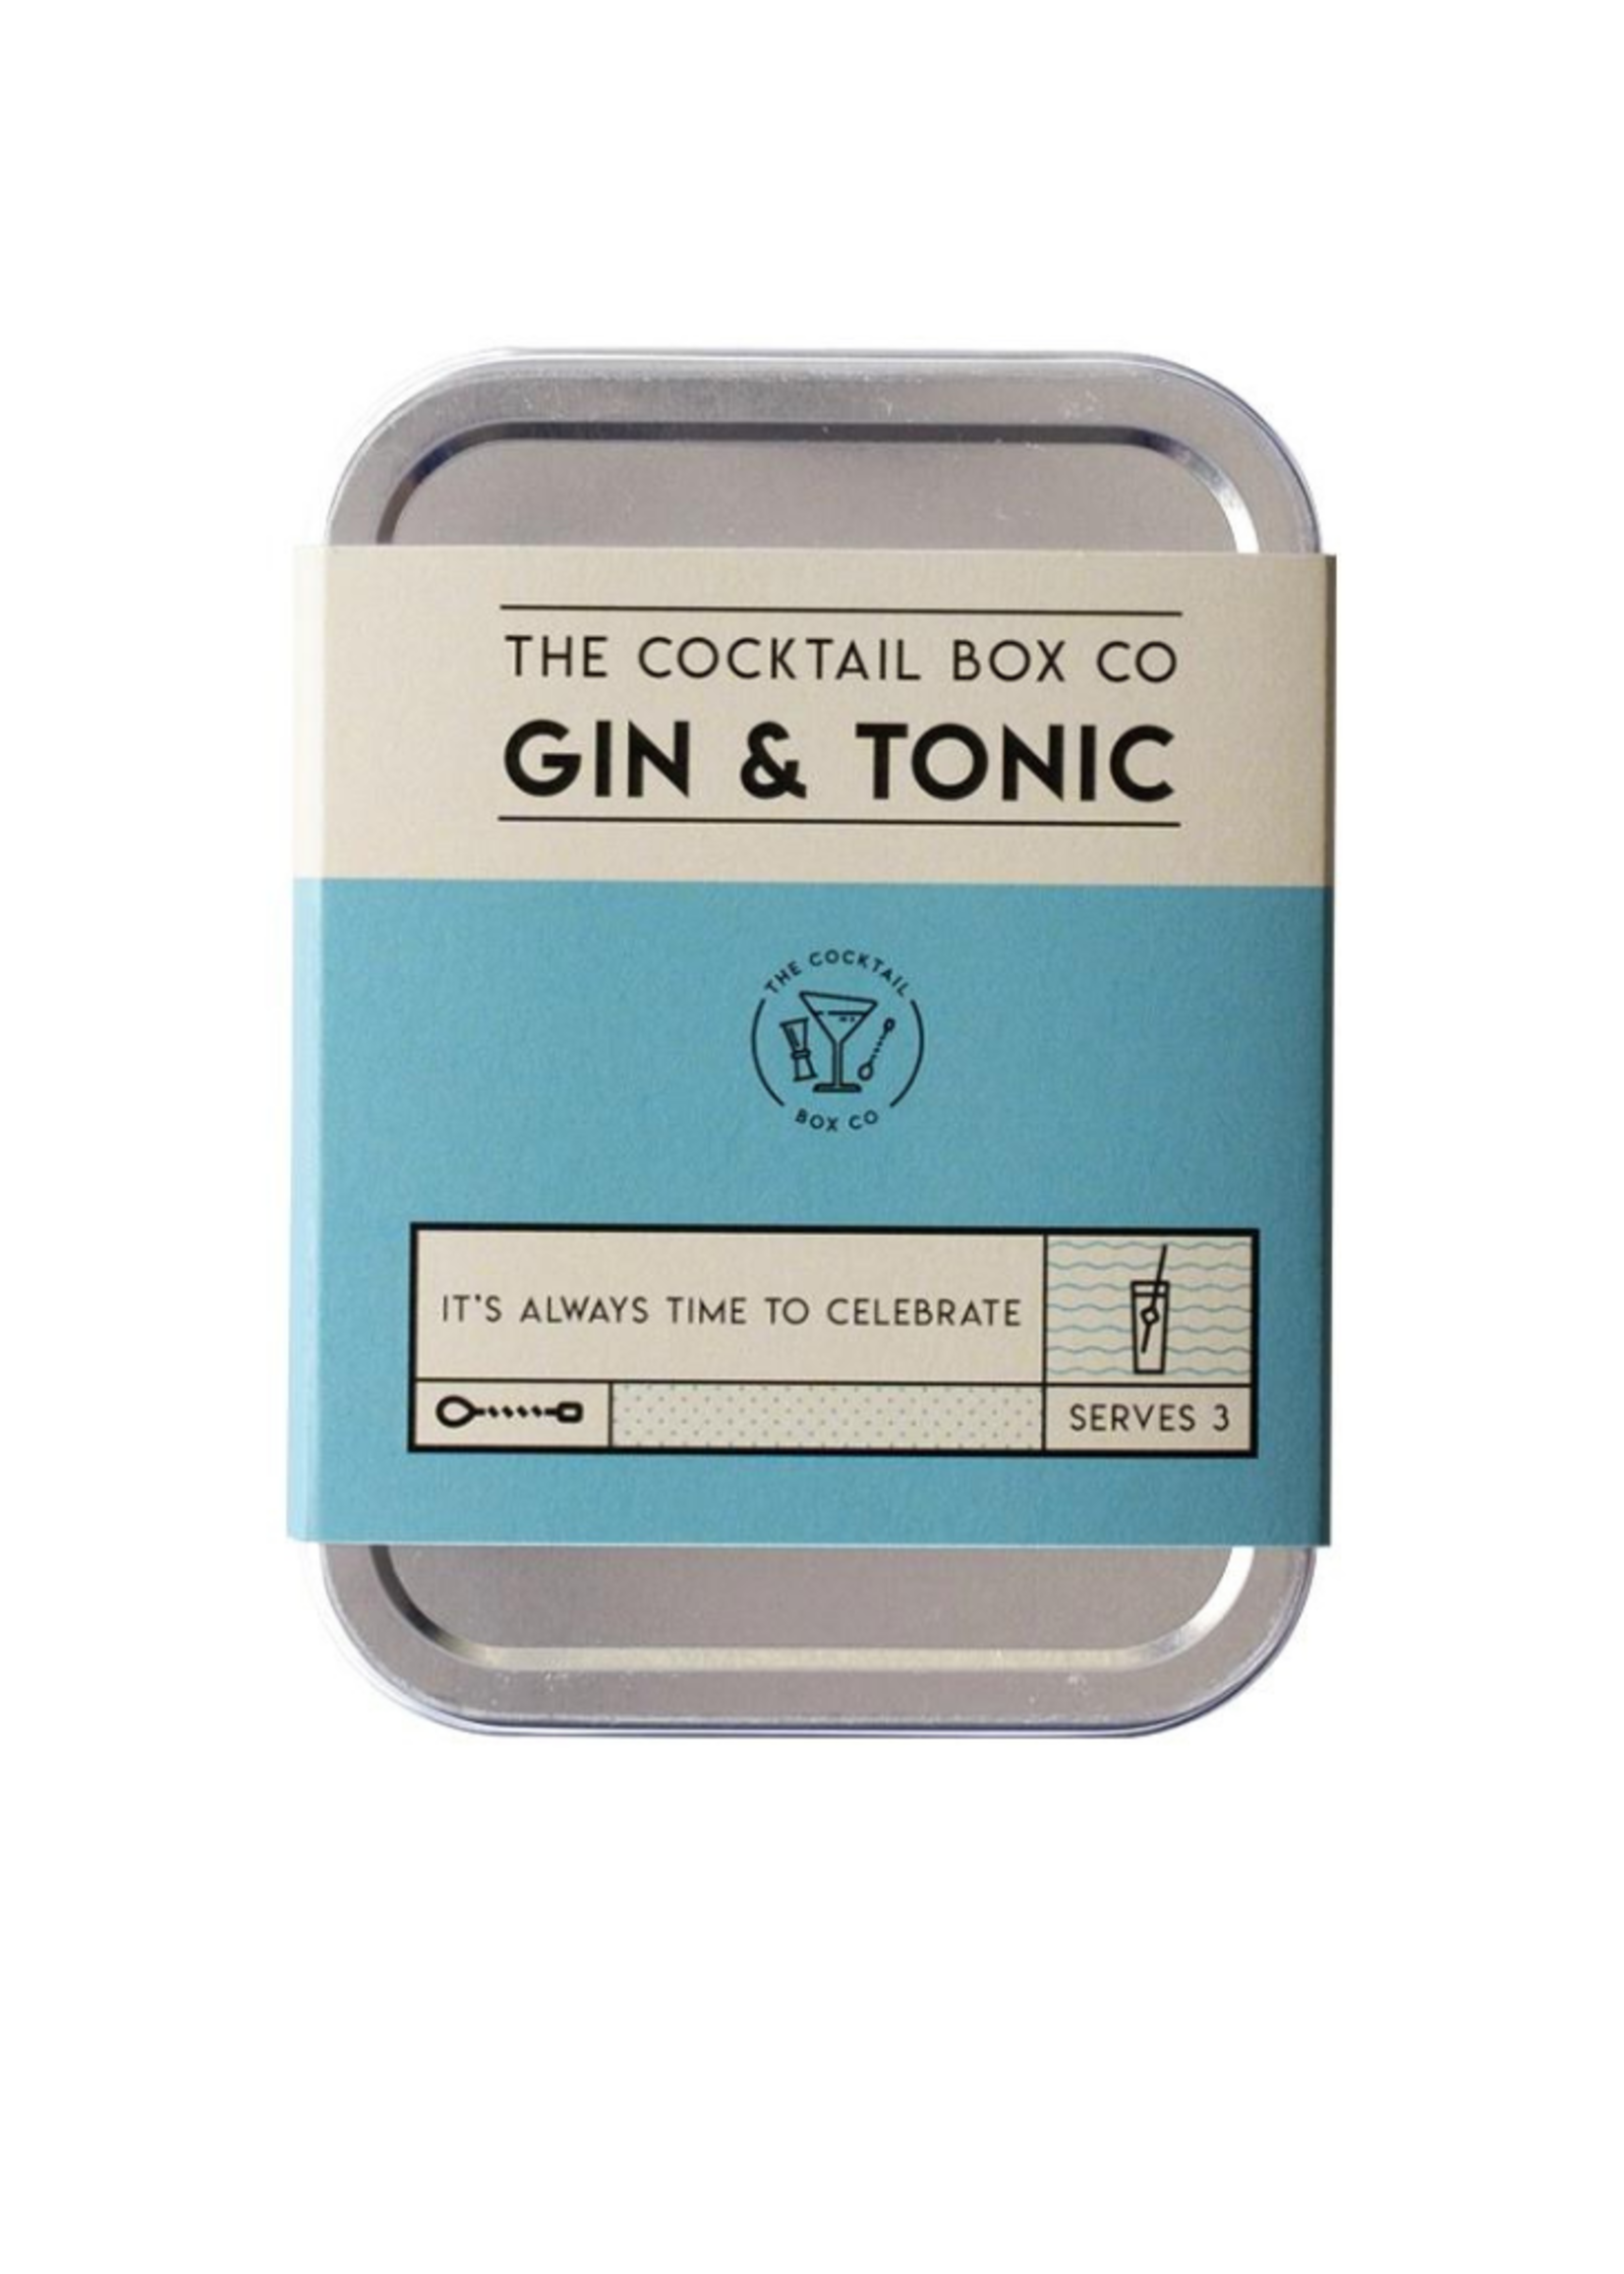 The Cocktail Box Co. The Gin & Tonic Cocktail Kit